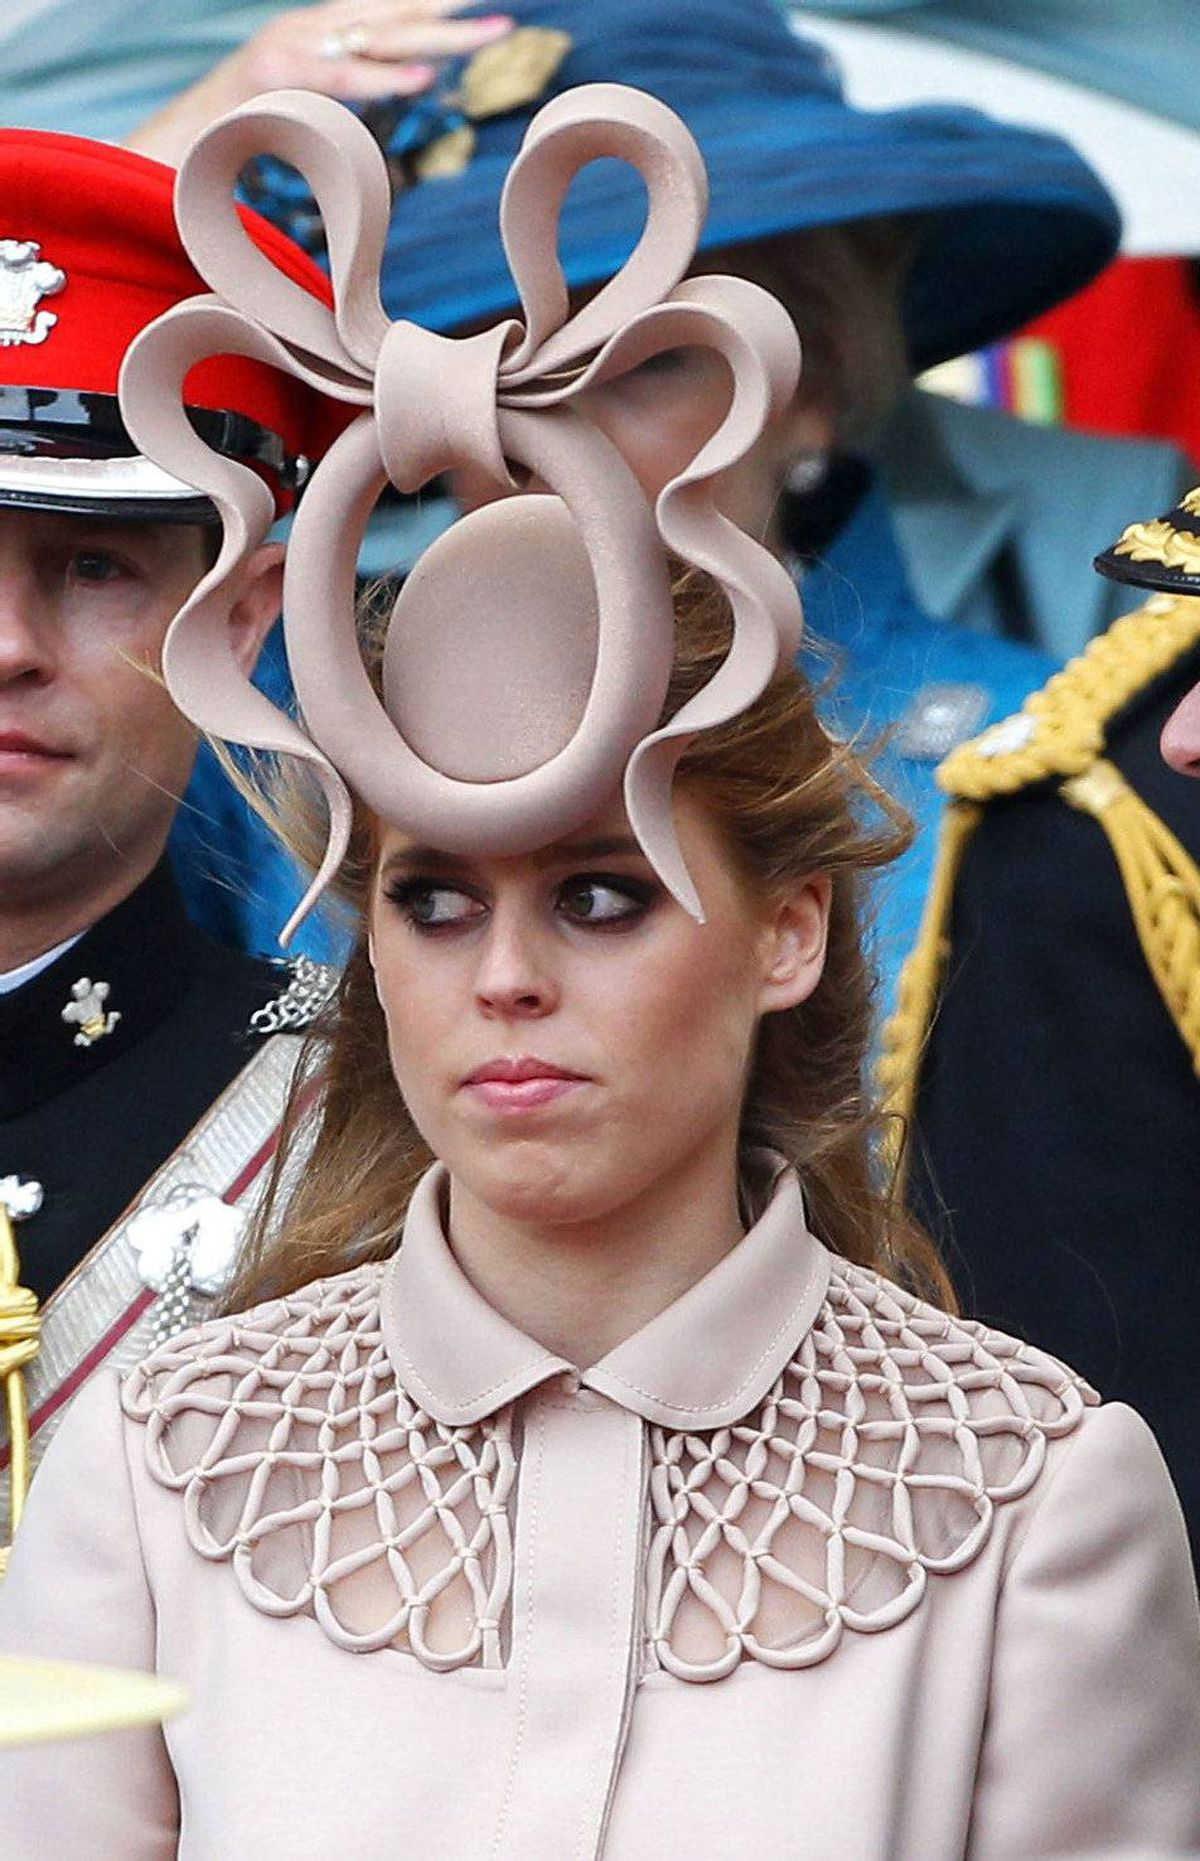 But none were as stunningly curious as Princess Beatrice's choice. Is it an octopus? A door knocker? An abstract rendition of female reproductive organs? The world will never know.